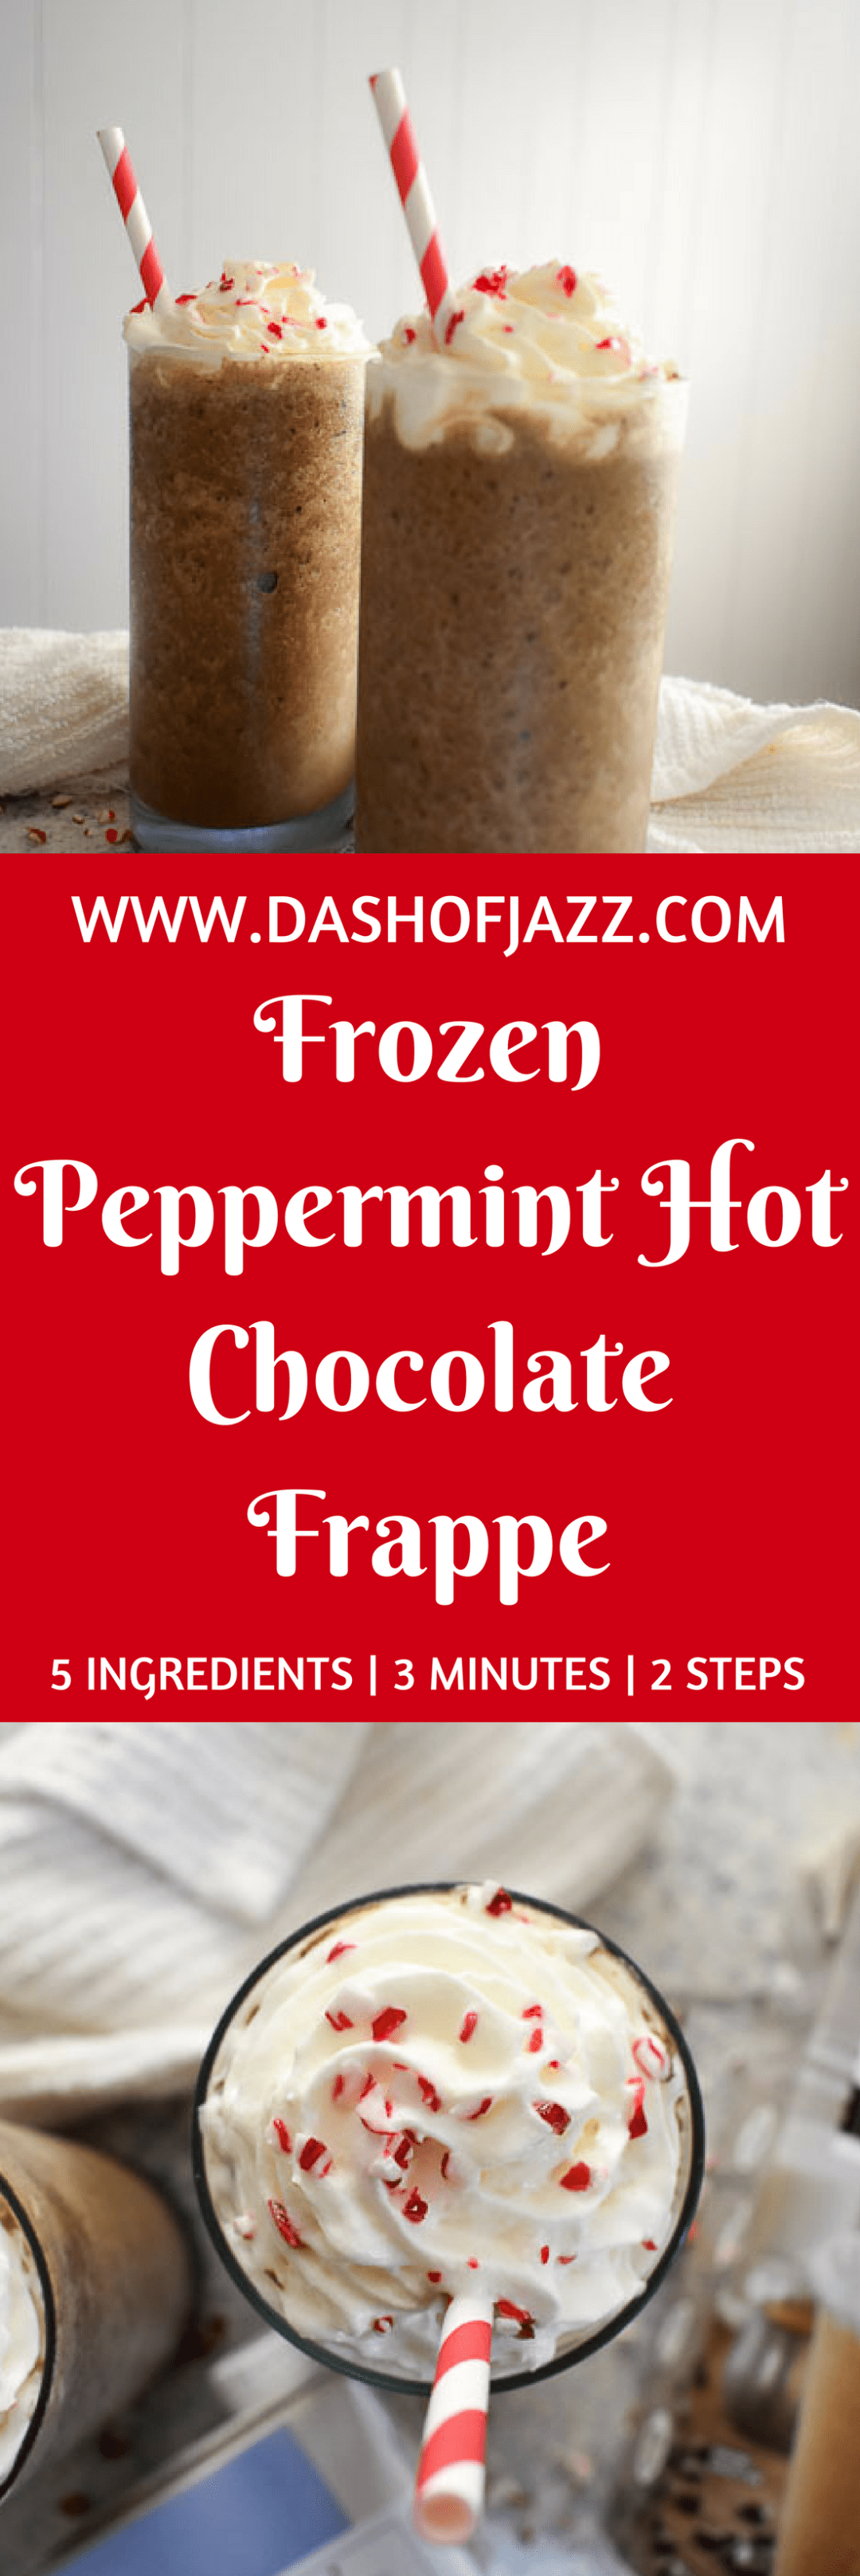 The frozen peppermint hot cocoa frappe is made with five ingredients and ready in three minutes for perfect homemade indulgence without a fancy coffee shop. Recipe by Dash of Jazz